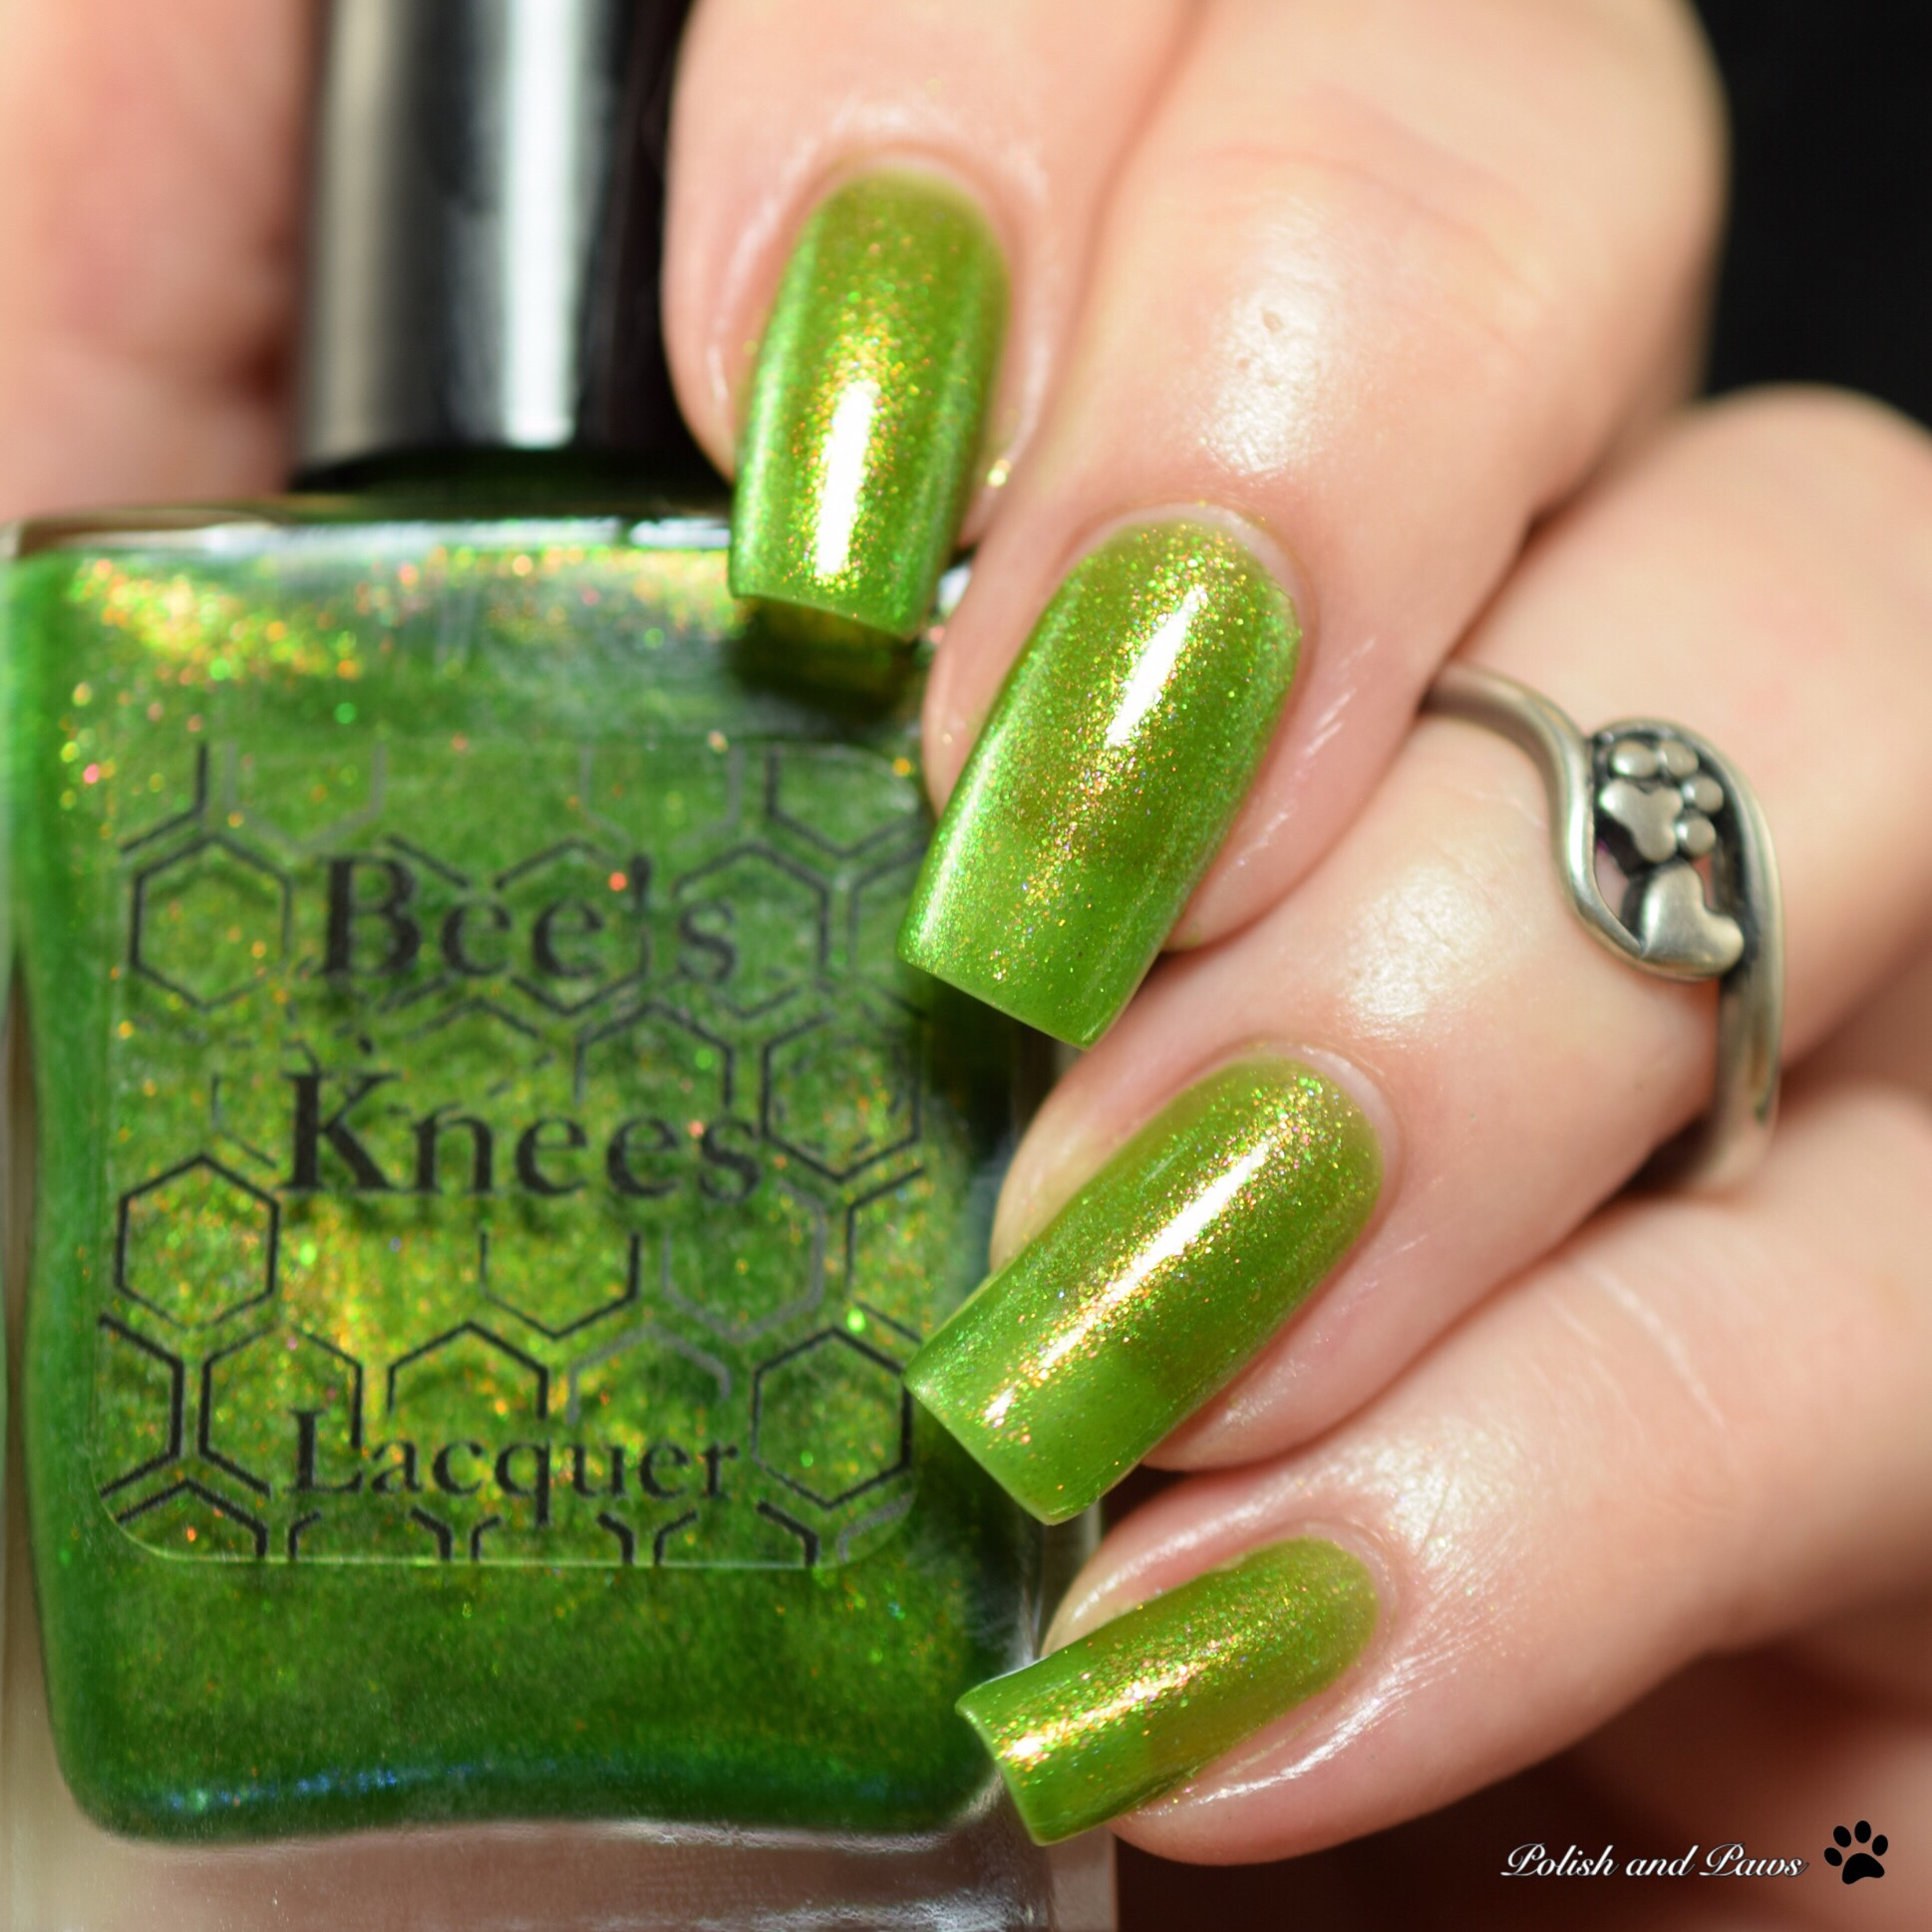 Bee's Knees Lacquer Murky Dismal